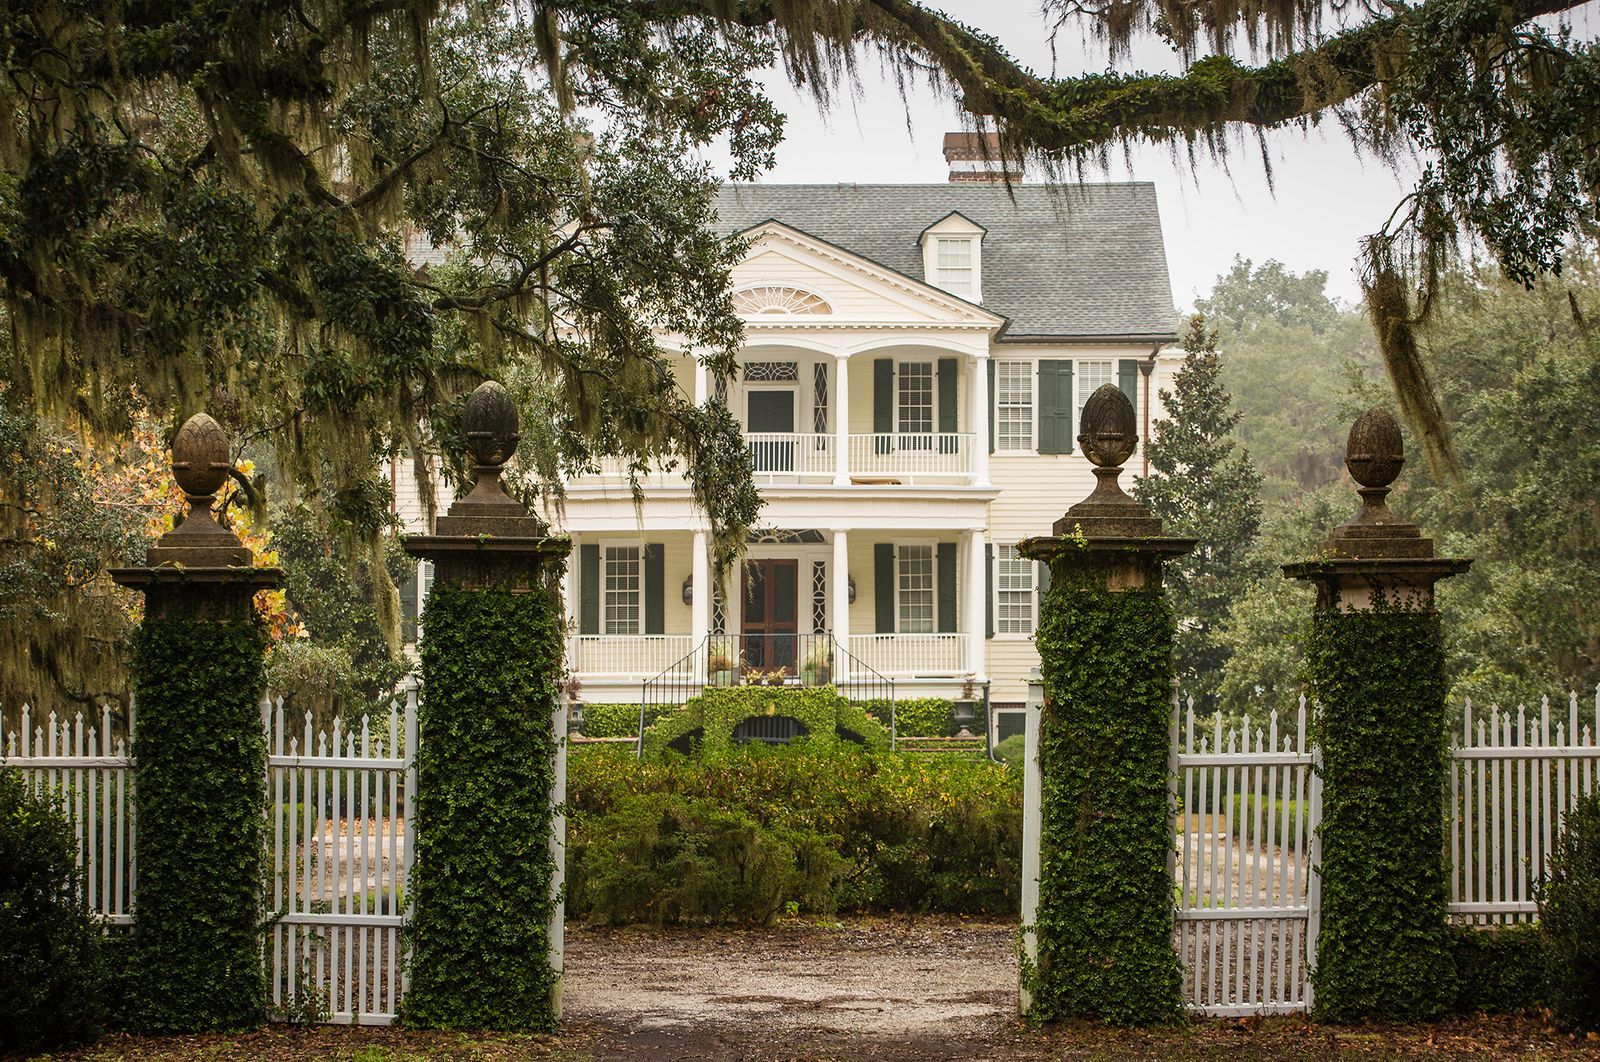 One of South Carolina's Most Spectacular Historical Homes